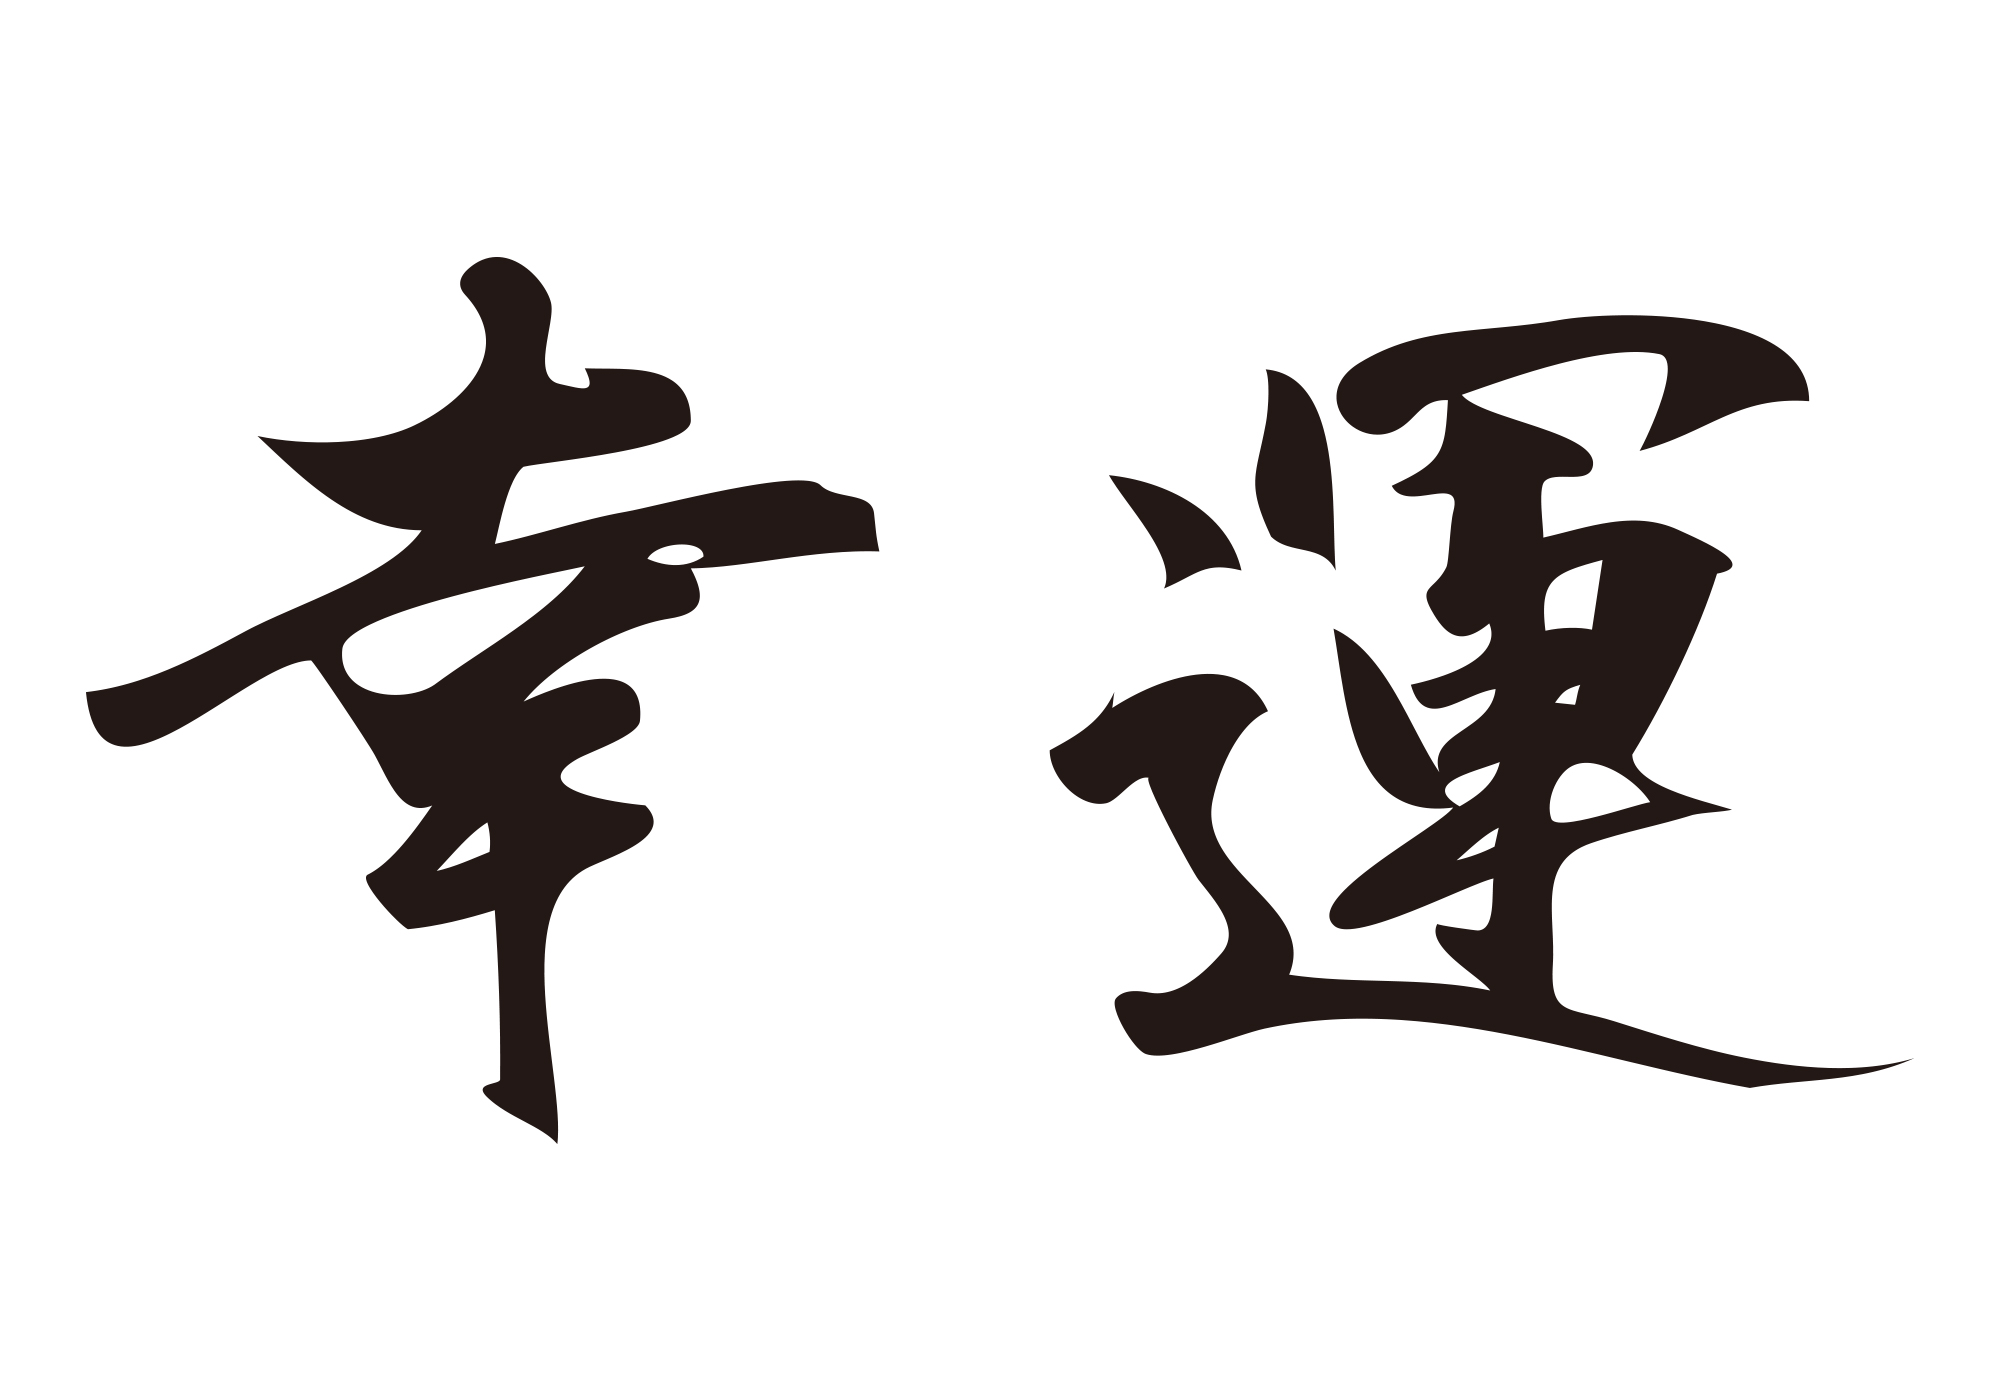 lucky-幸運 in Japanese